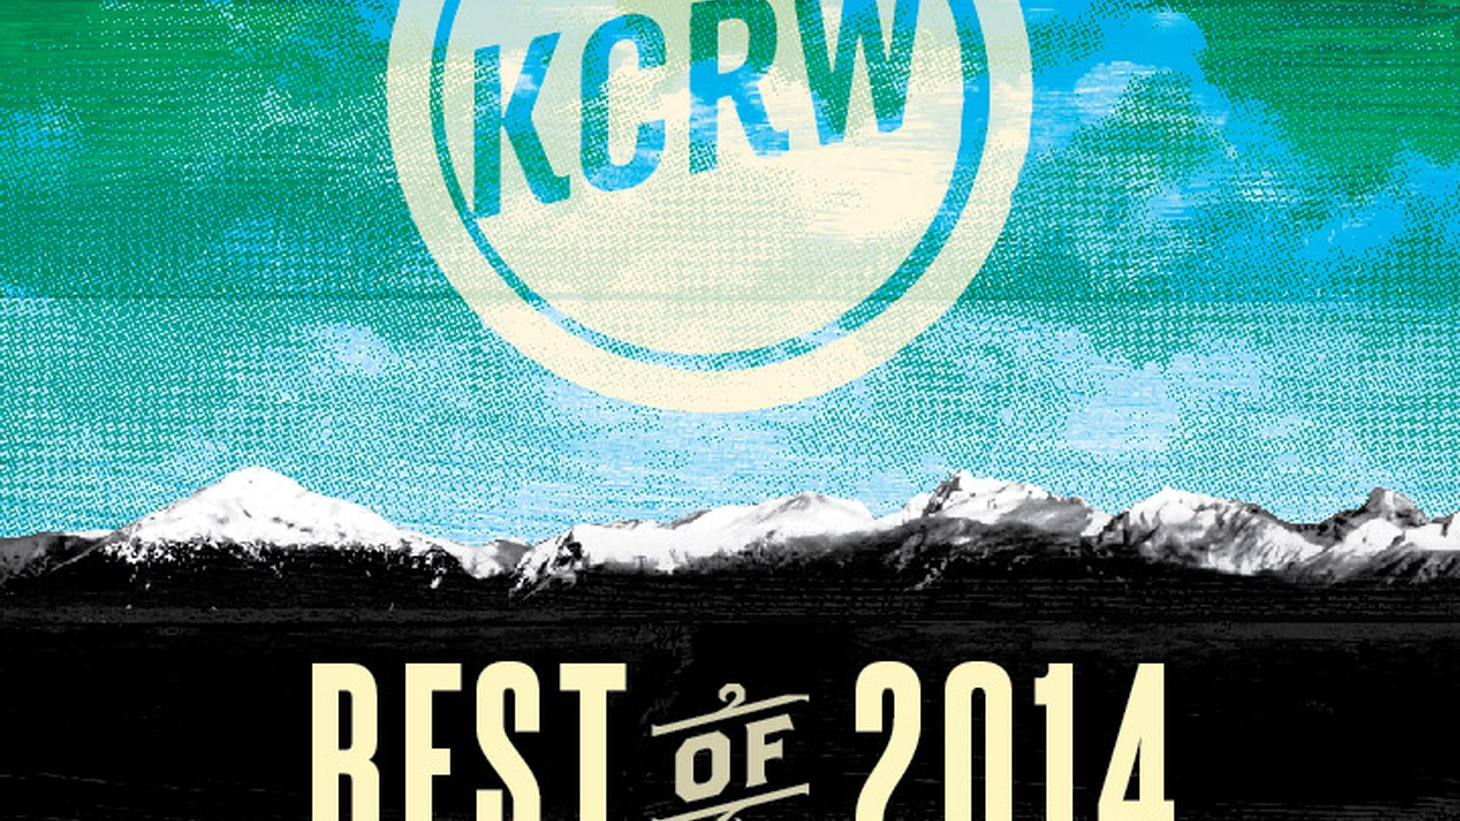 A collection of KCRW's best original programming from 2014.